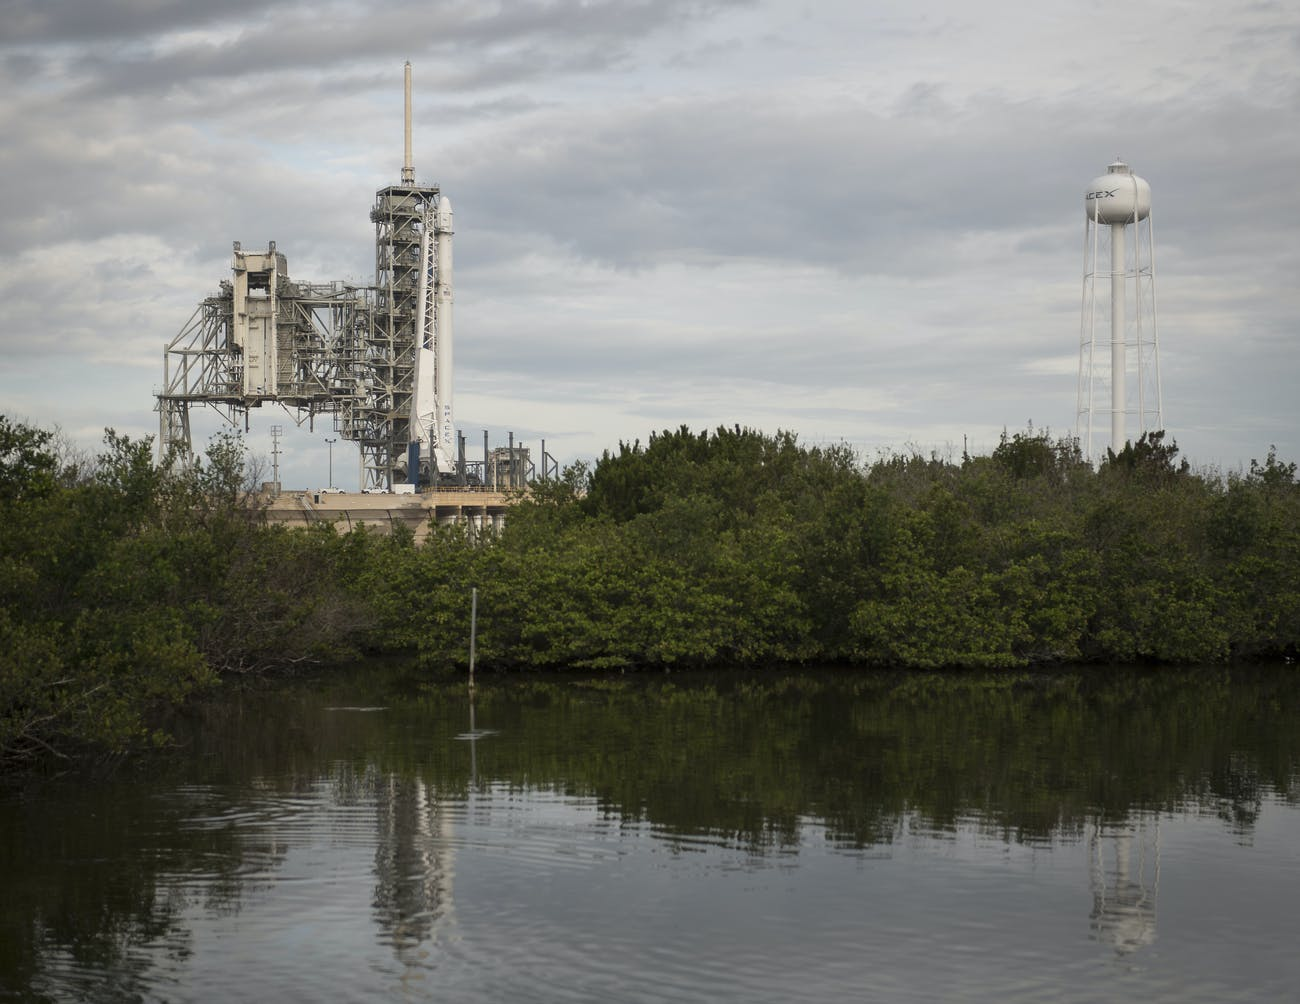 CAPE CANAVERAL, FL - JUNE 03: In this handout provided by the National Aeronautics and Space Administration (NASA), the SpaceX Falcon 9 rocket, with the Dragon spacecraft onboard, is seen at Launch Complex 39A at NASA's Kennedy Space Center on June 3, 2017 in Cape Canaveral, Florida. Dragon is carrying almost 6,000 pounds of science research, crew supplies and hardware to the International Space Station in support of the Expedition 52 and 53 crew members. The unpressurized trunk of the spacecraft also will transport solar panels, tools for Earth-observation and equipment to study neutron stars. This will be the 100th launch, and sixth SpaceX launch, from this pad. Previous launches include 11 Apollo flights, the launch of the unmanned Skylab in 1973, 82 shuttle flights and five SpaceX launches. (Photo by Bill Ingalls/NASA via Getty Images)